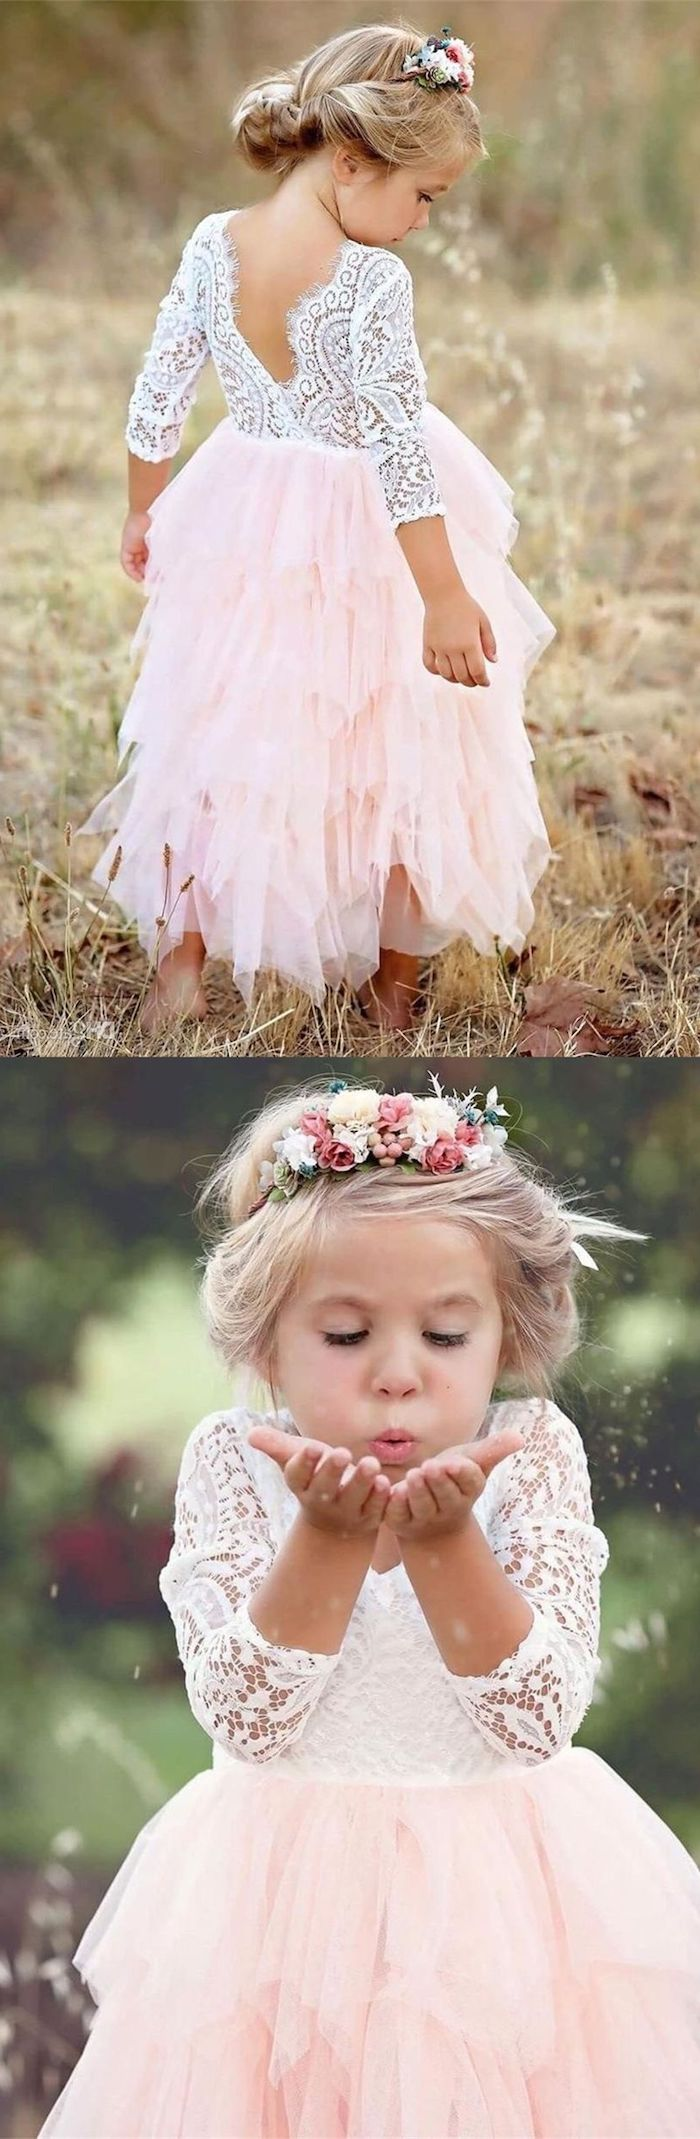 white lace top, pink tulle bottom, flower crown, flower girl dress, blonde hair, in a low updo